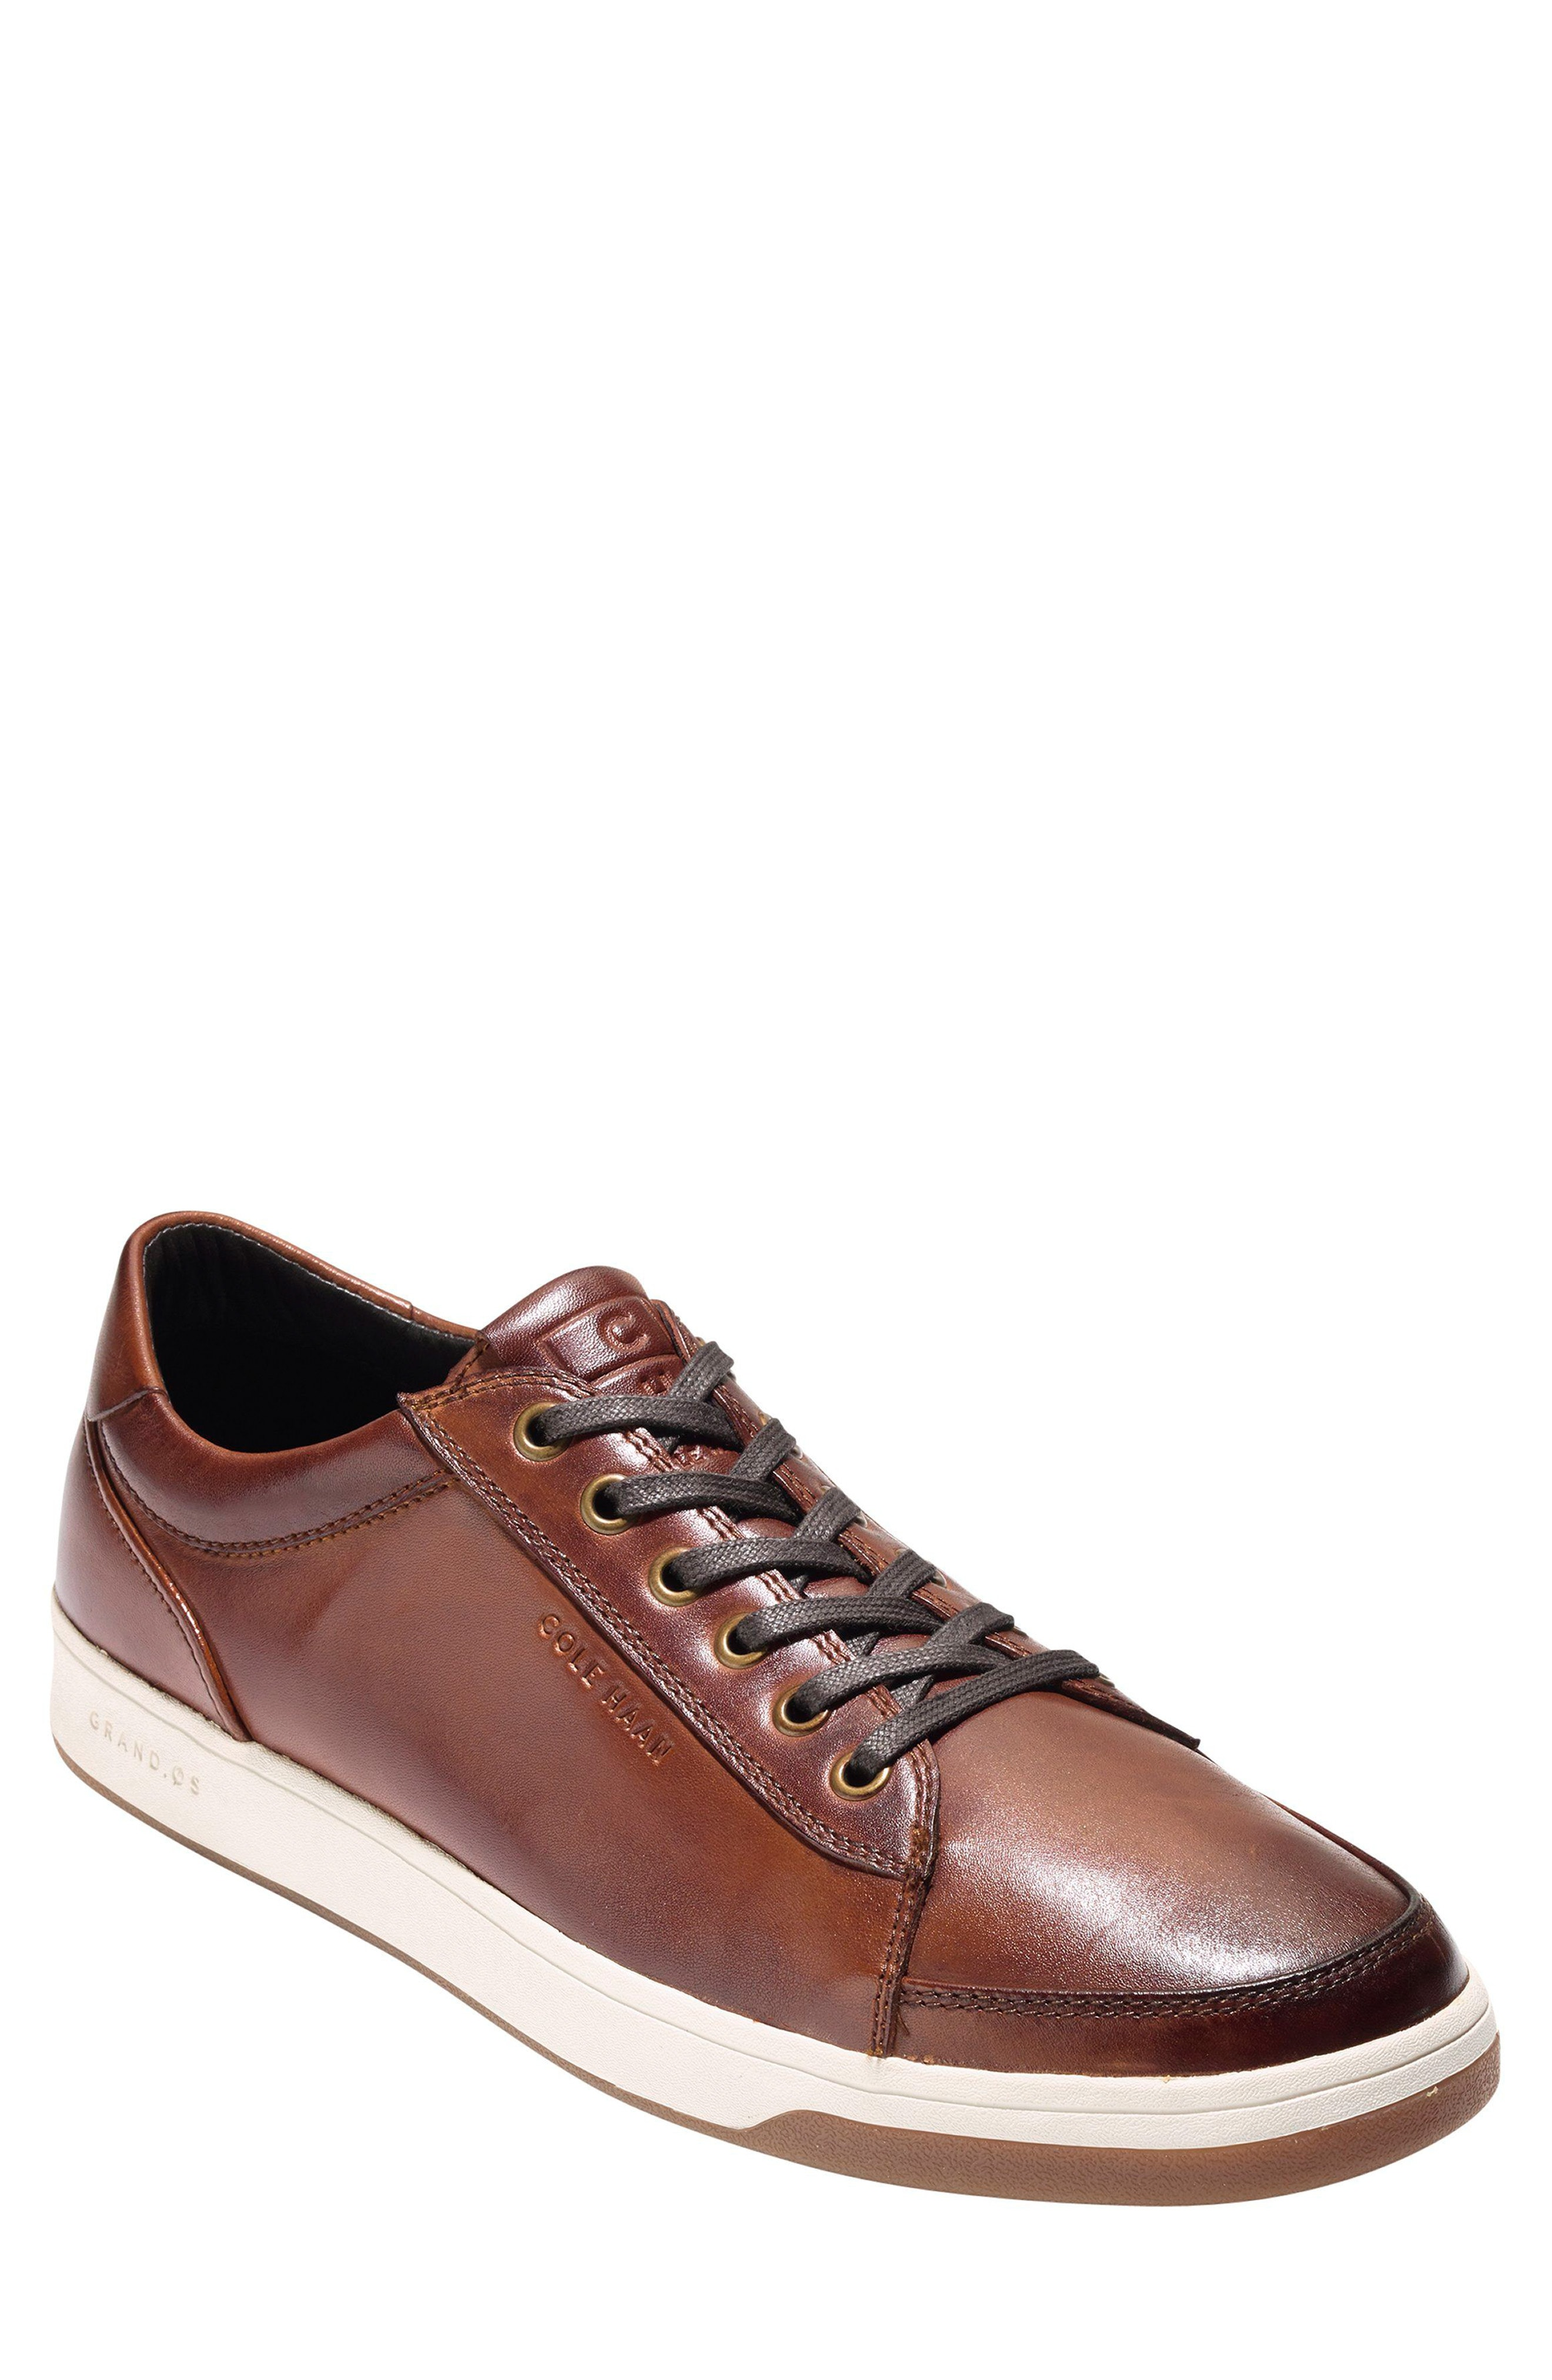 Men's Sneakers, Athletic & Running Shoes   Nordstrom